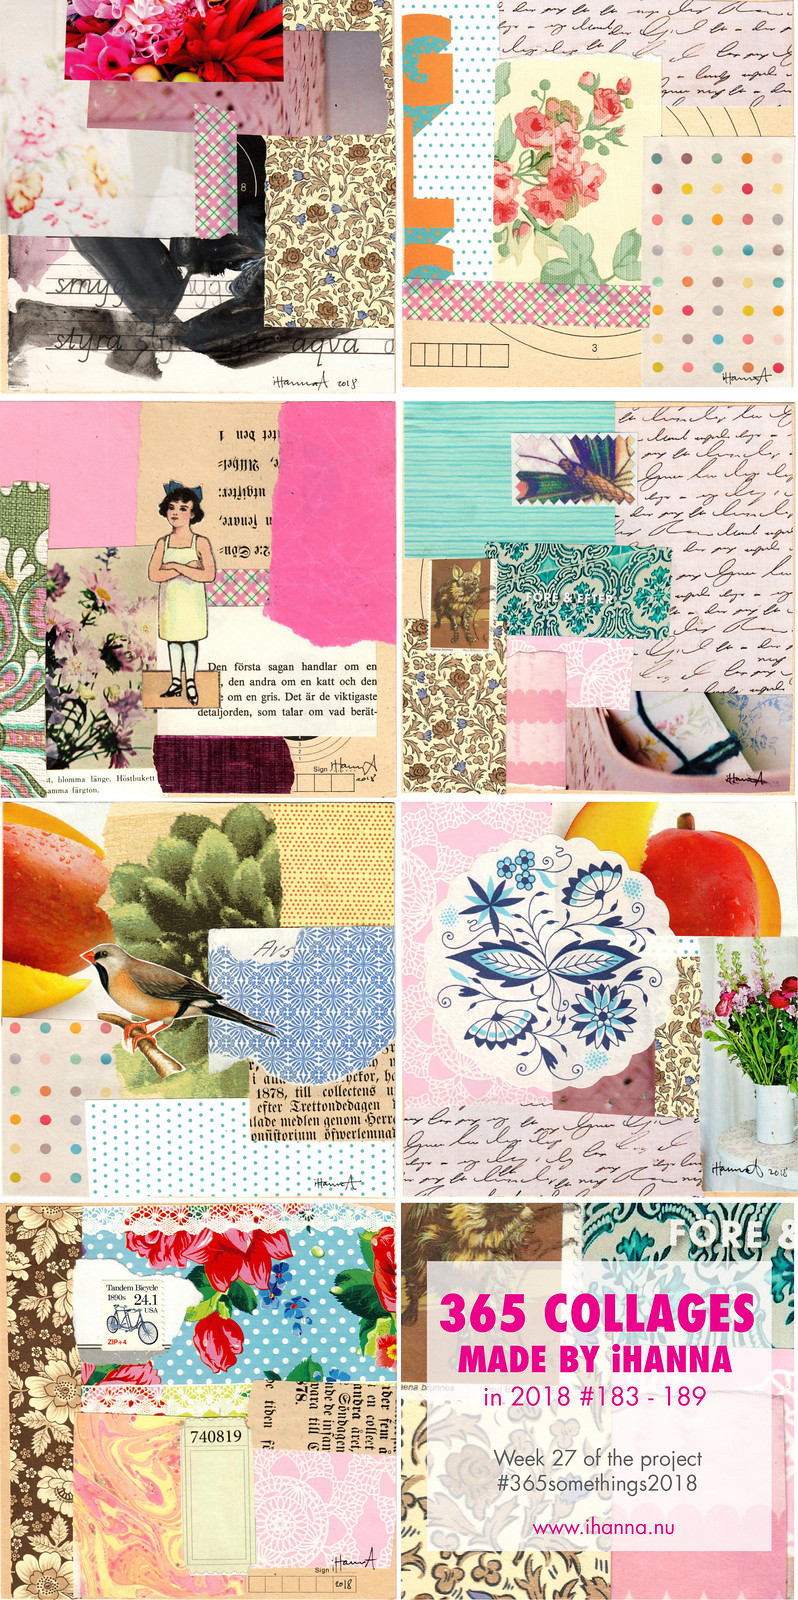 iHanna's 365 Collages in 2018 Week 27 (183 to 189) - Copyright Hanna Andersson, Sweden #365somethings2018